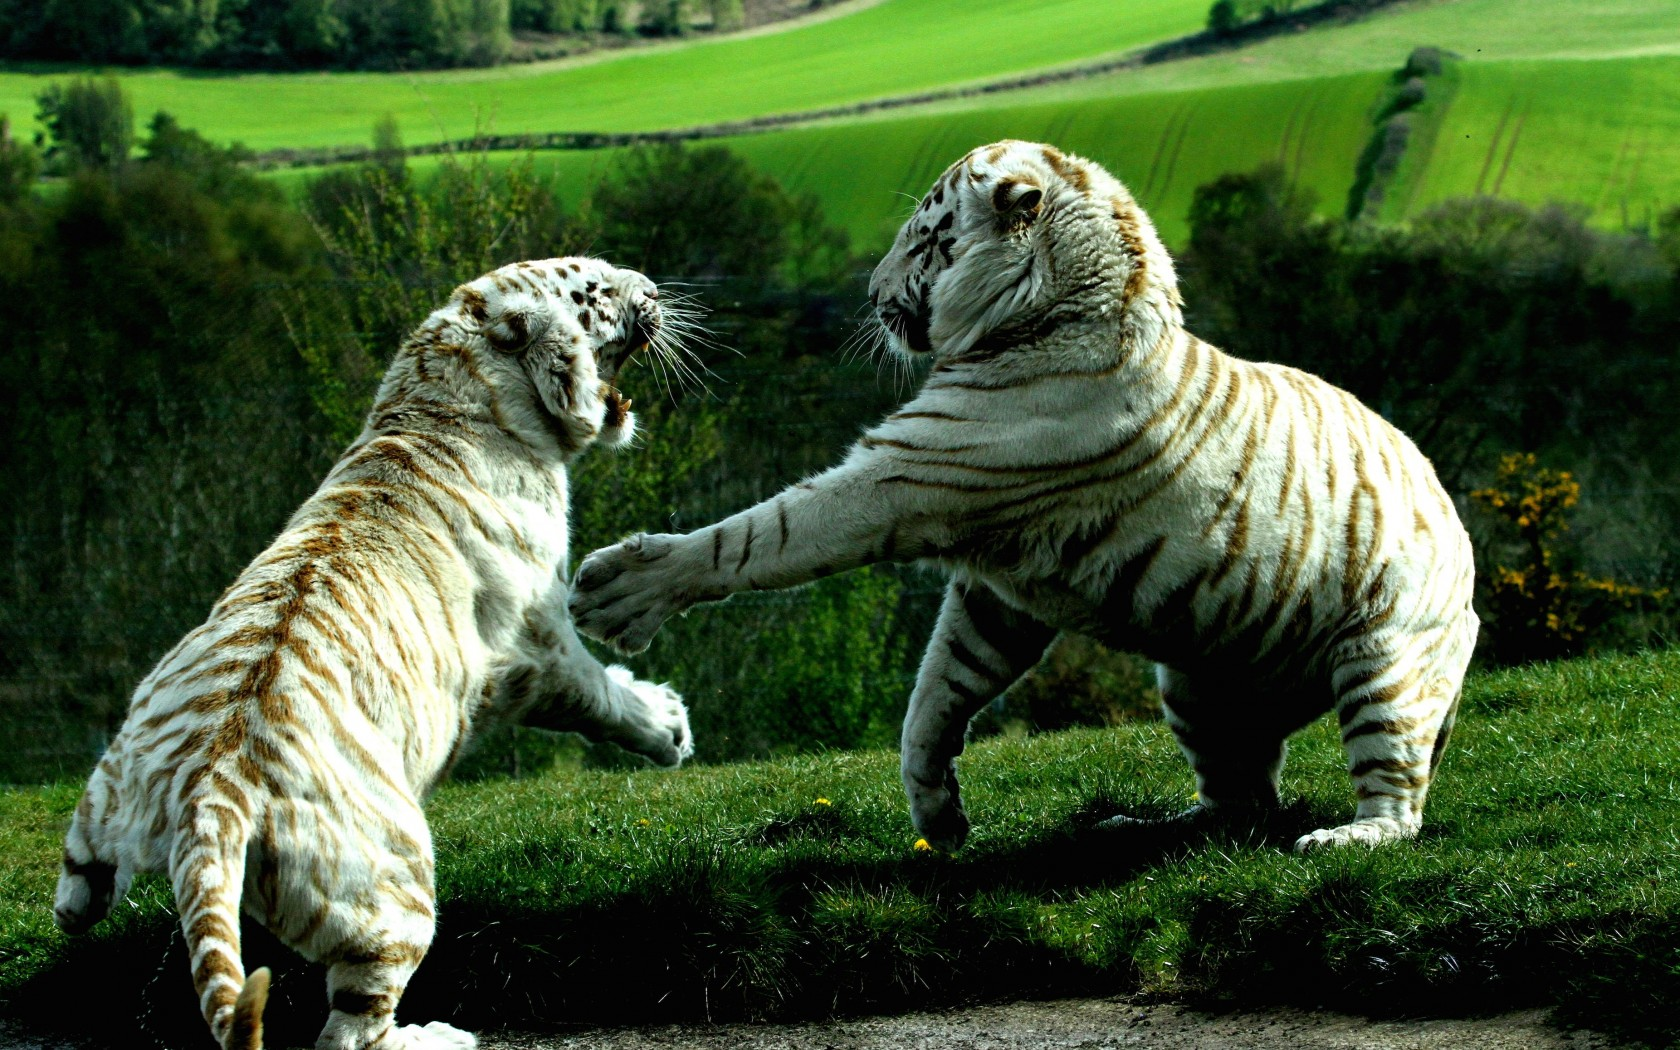 White Tigers Fighting Wallpaper for Desktop 1680x1050